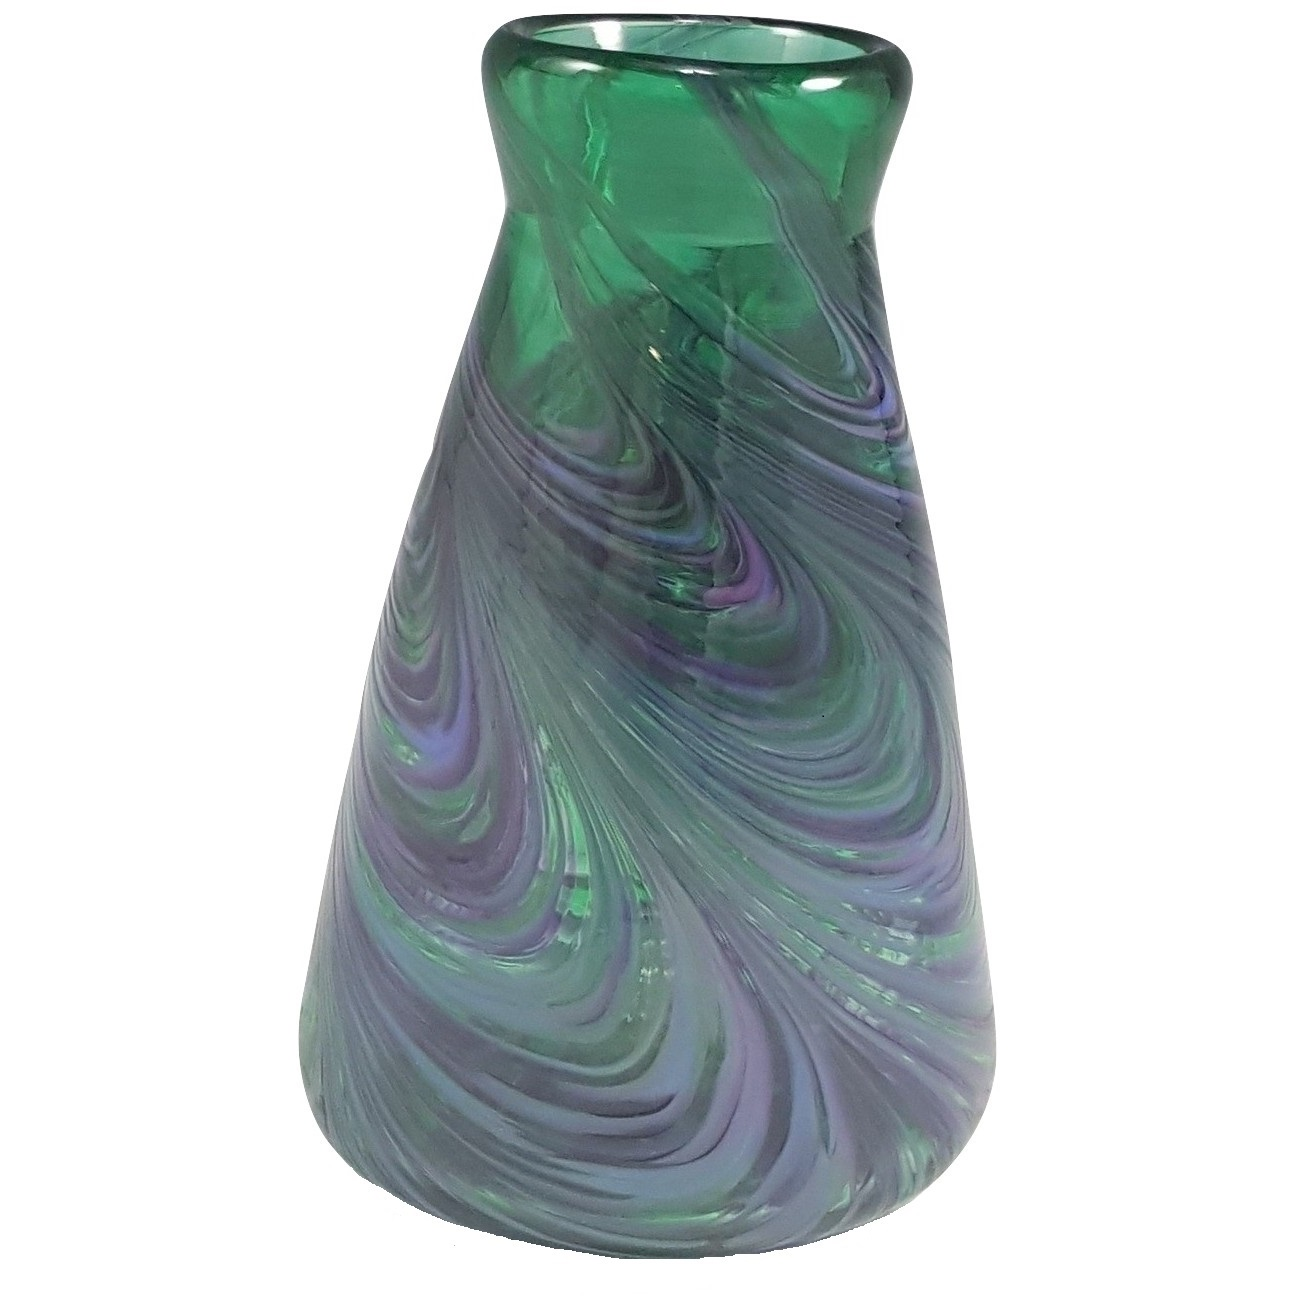 Angle Vase in Cool Mix Green